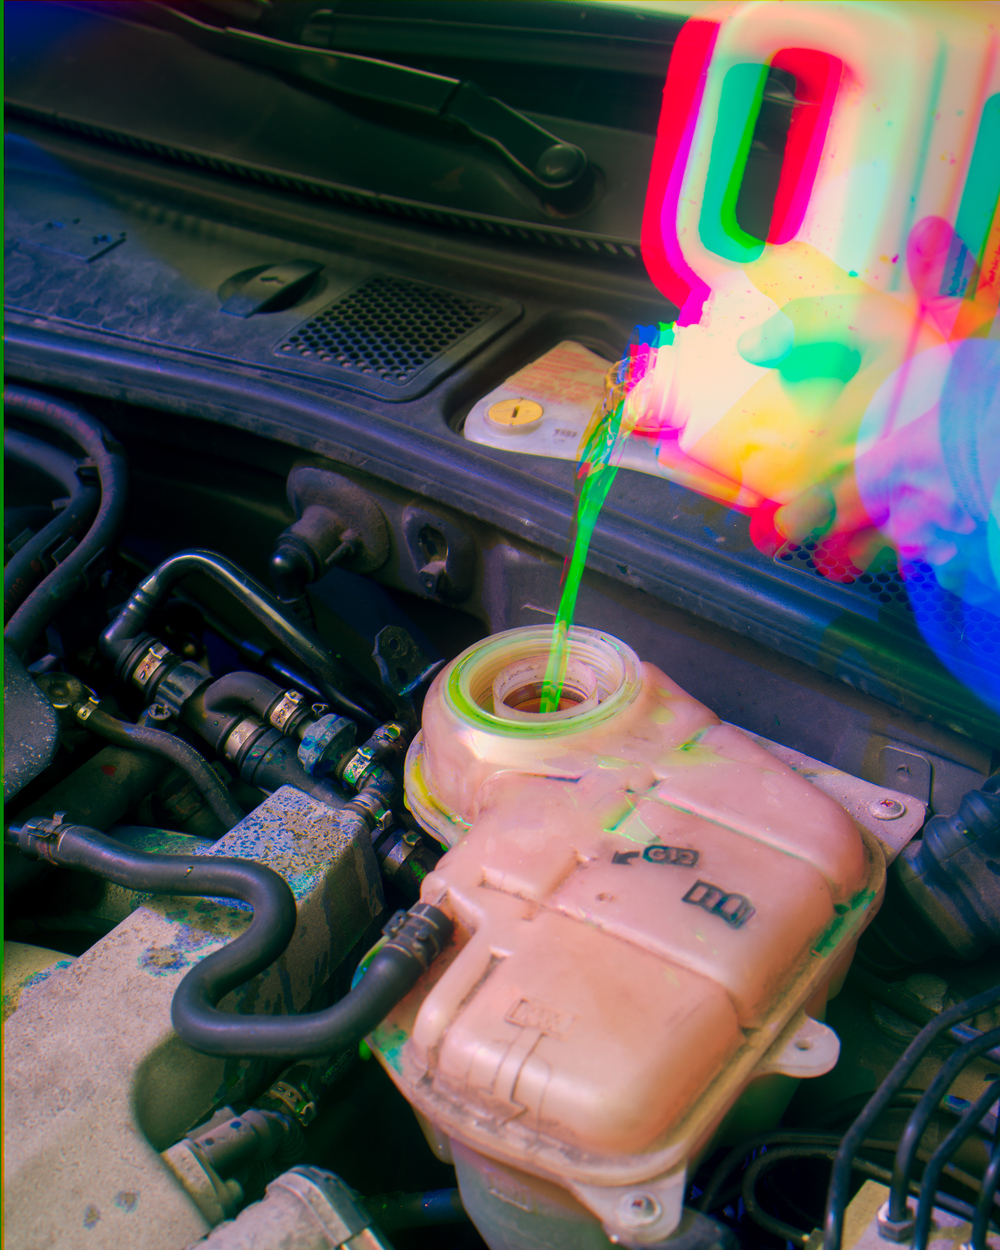 The Color of Coolant, Preventative Maintenance , 2015 Archival pigment print 30 x 24 in (76.2 x 60.96 cm)